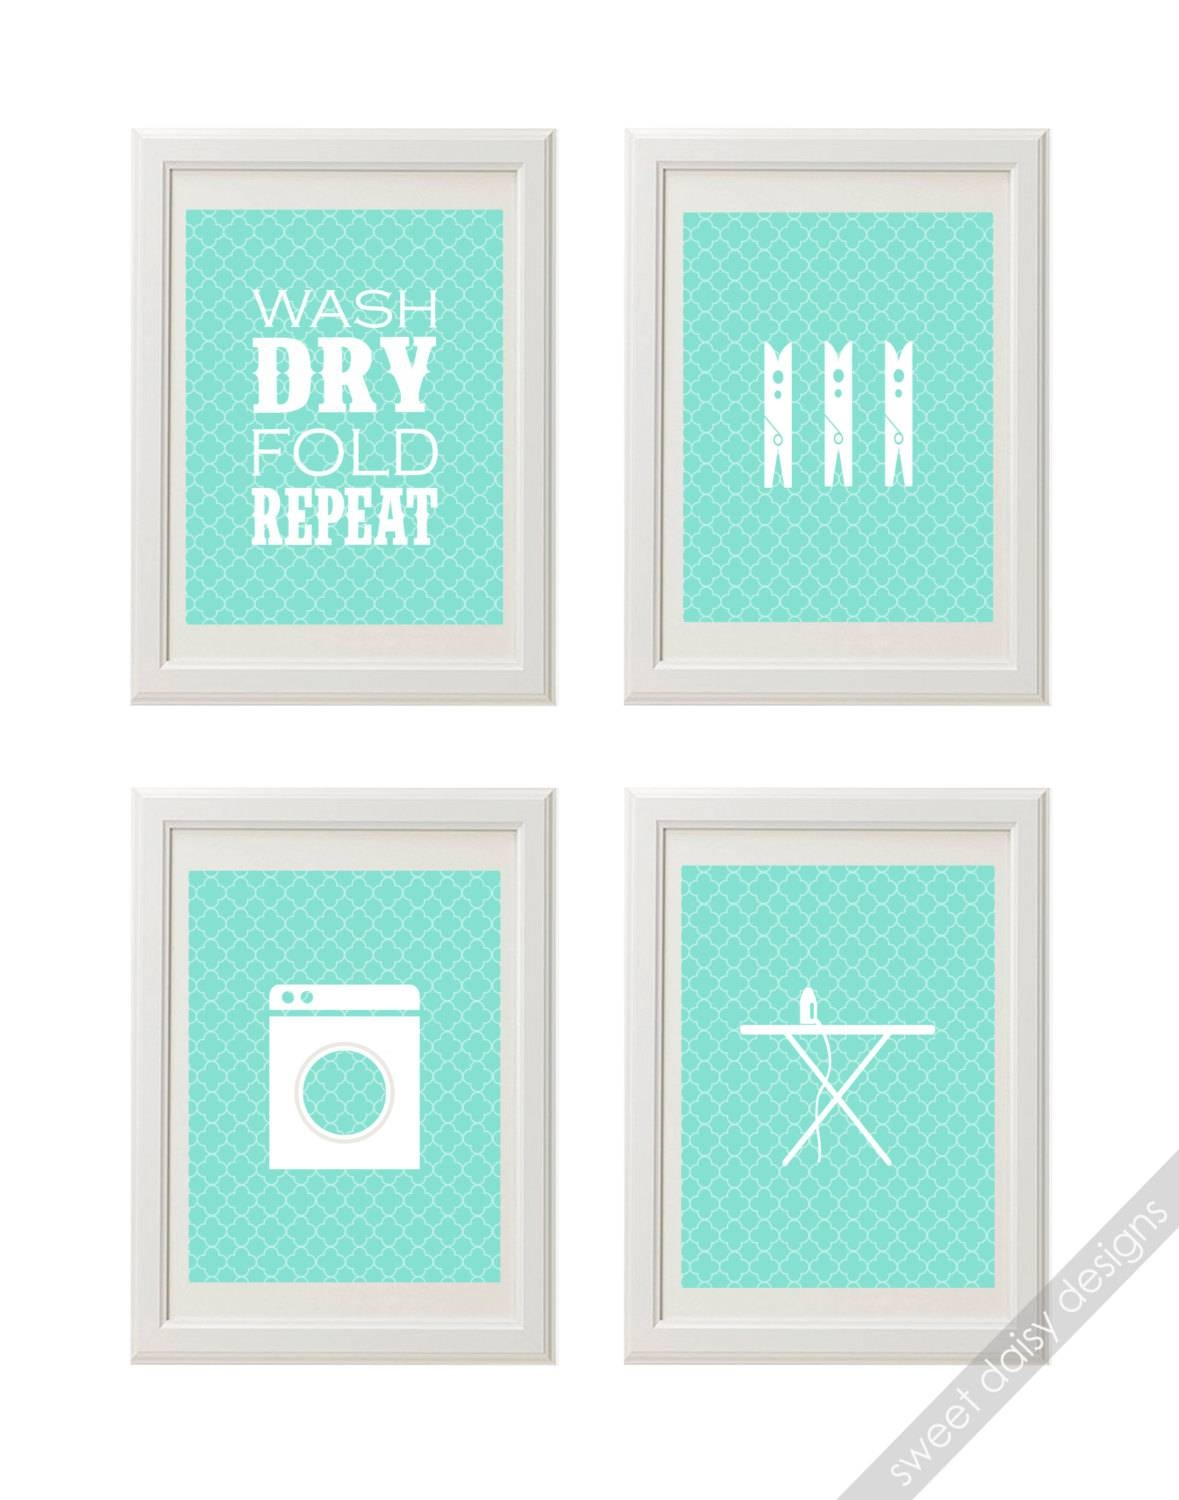 Laundry Prints Laundry Room Wall Art 4 Printable Printable Regarding Most Recently Released Laundry Room Wall Art (View 10 of 30)